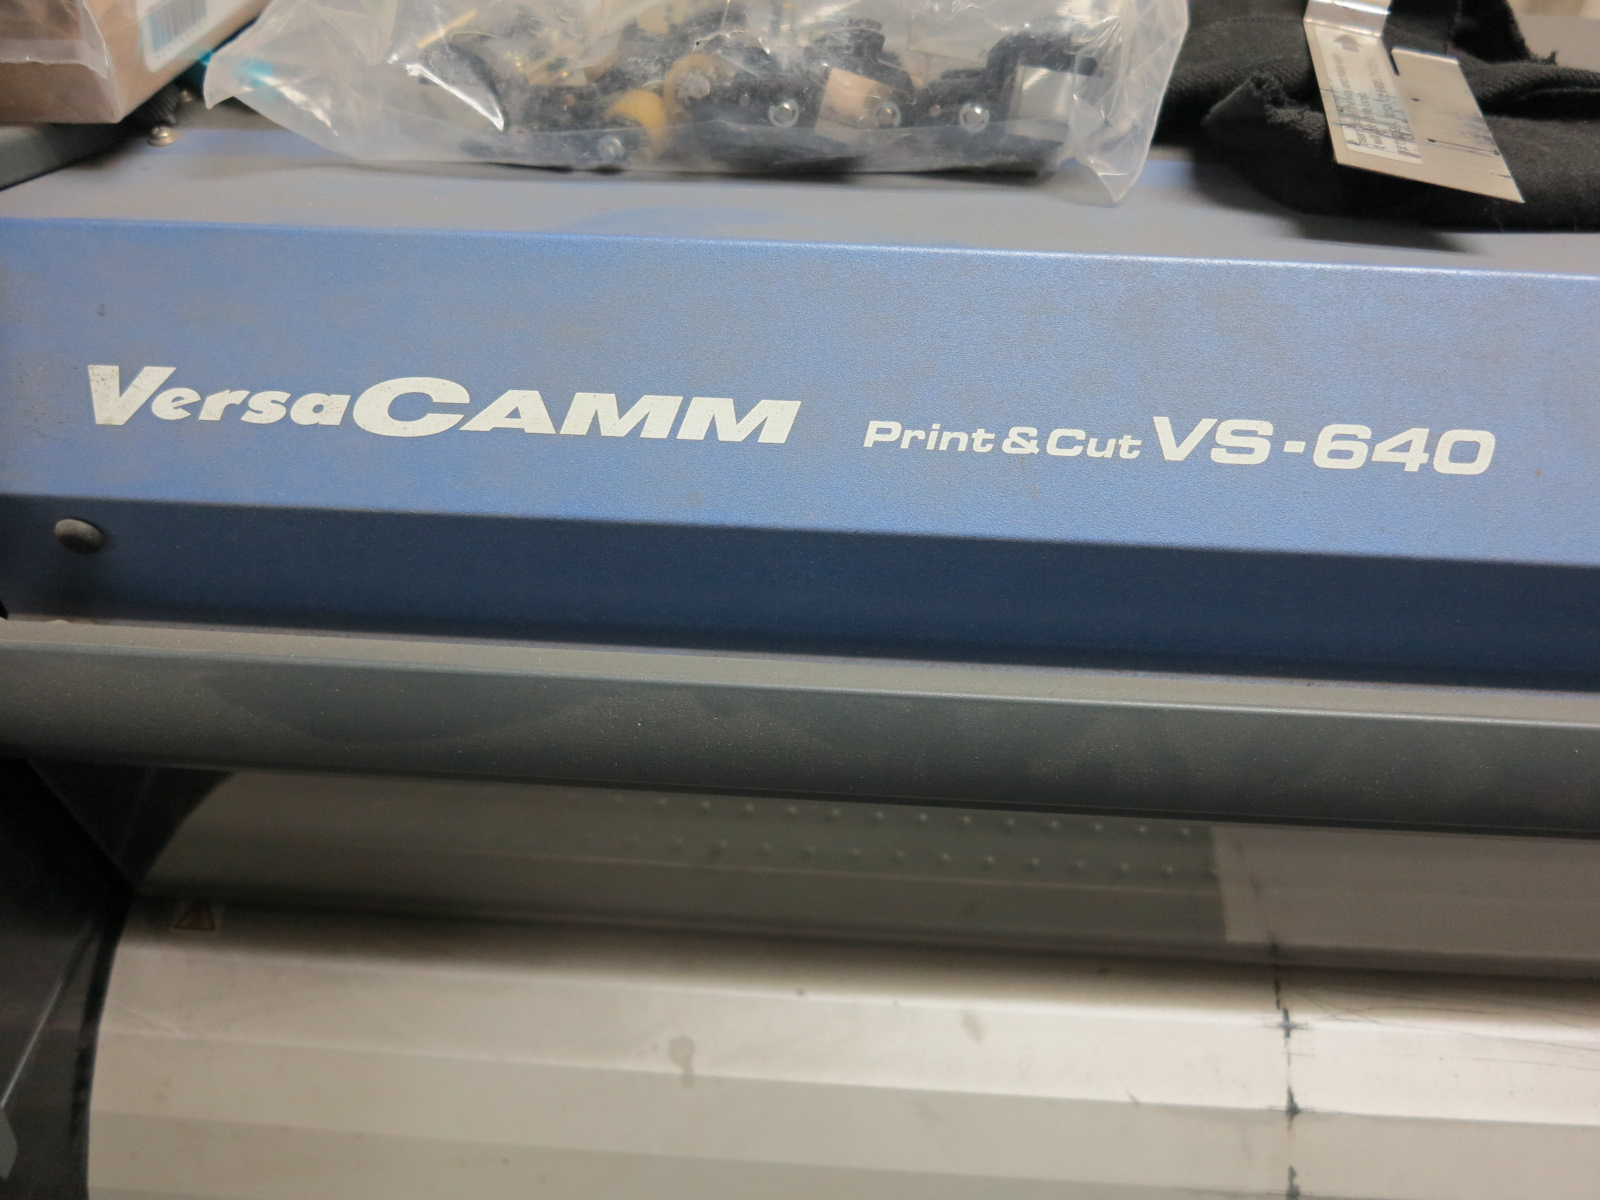 "ROLAND VERSA CAMM PRINT & CUT VS-640 64"" METALLIC INKJET PRINTER/CUTTER - Image 2 of 3"